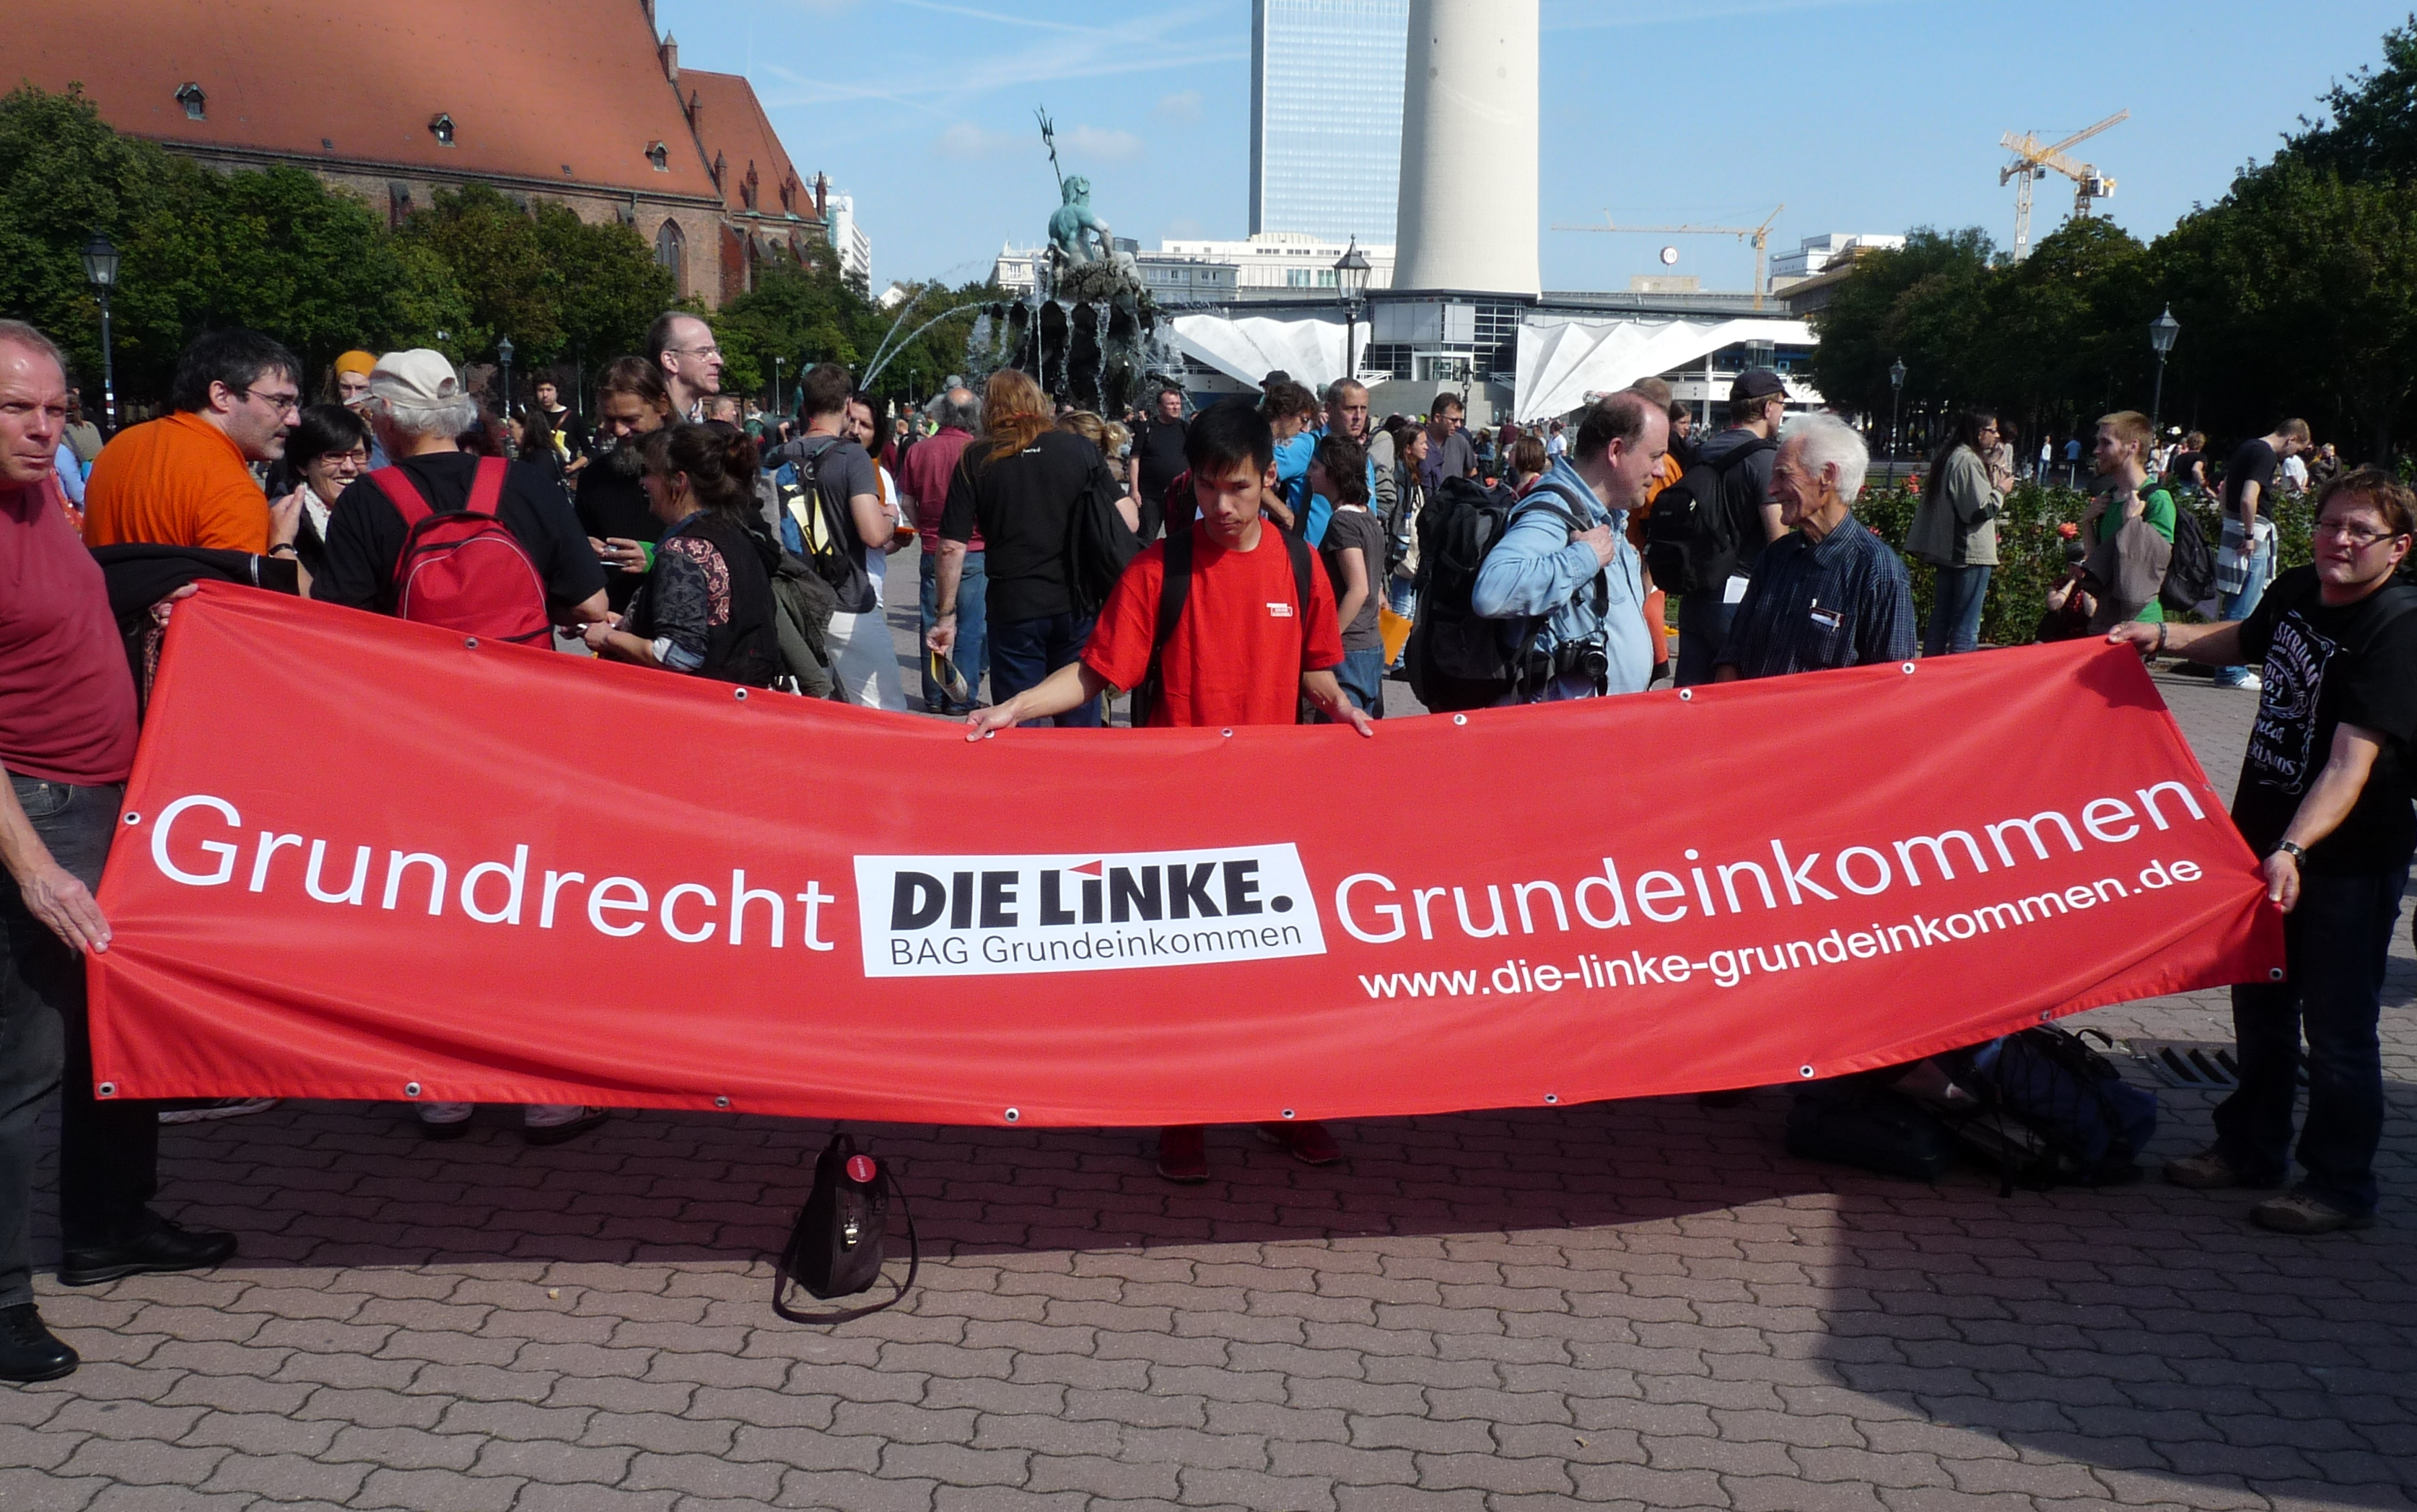 https://upload.wikimedia.org/wikipedia/commons/1/16/Die_Linke_Grundrecht_Grundeinkommen_BGE_Berlin_2013.jpg